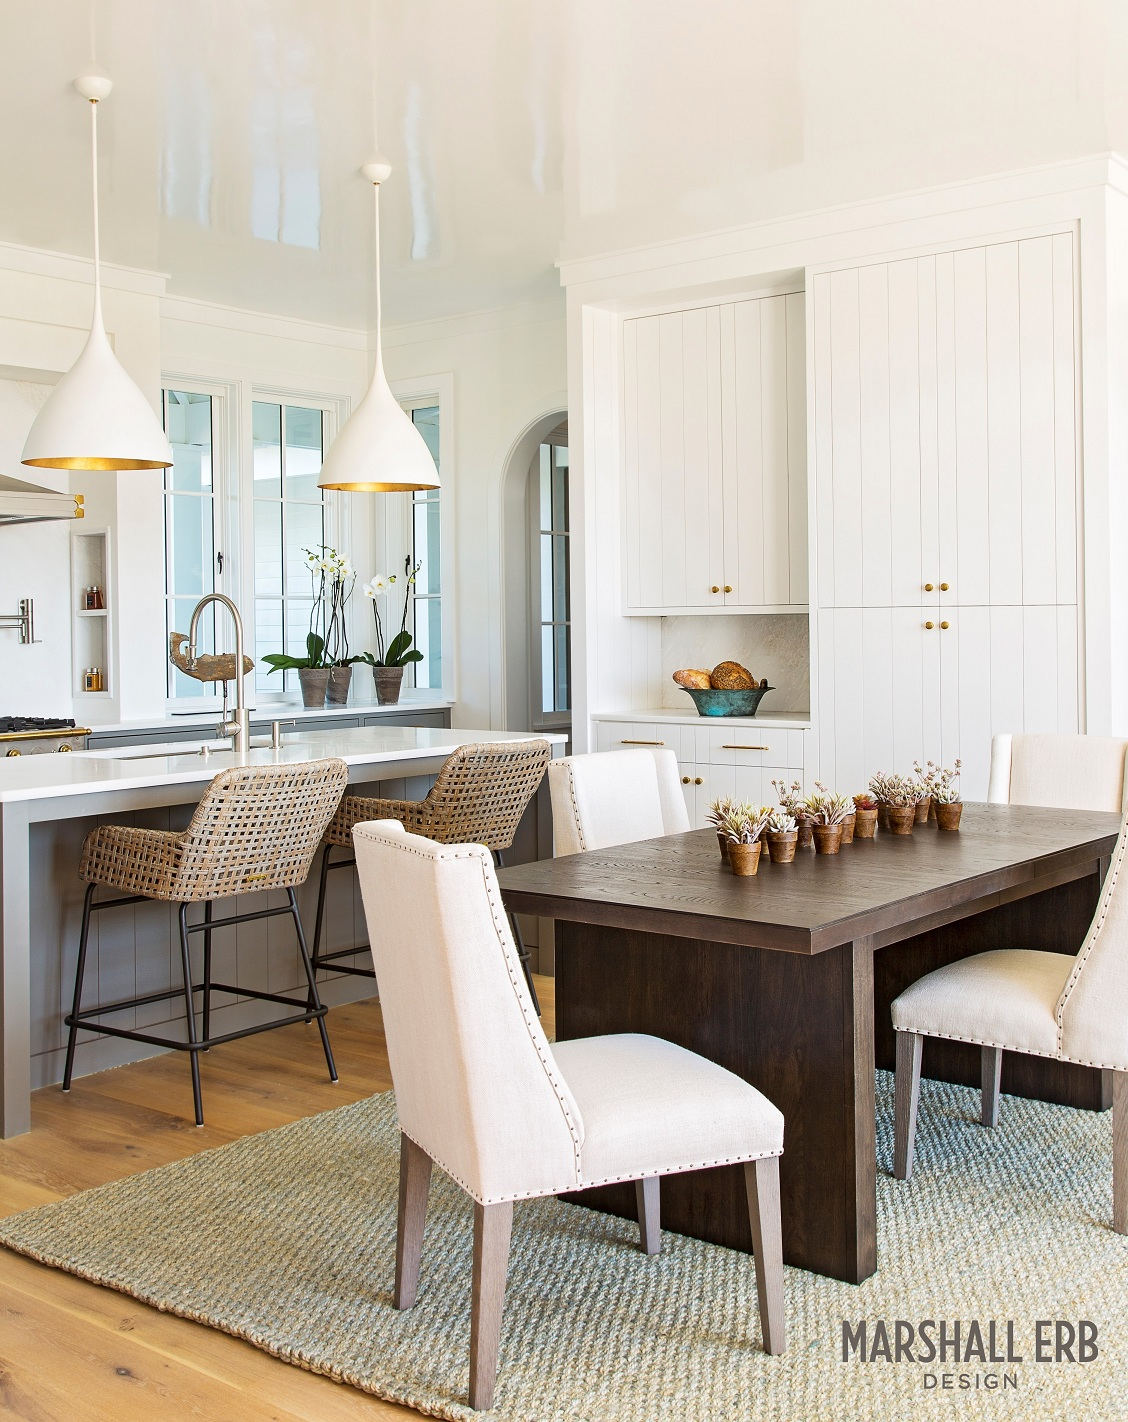 Marshall-Erb-Design-Beach-House-Dining-Kitchen